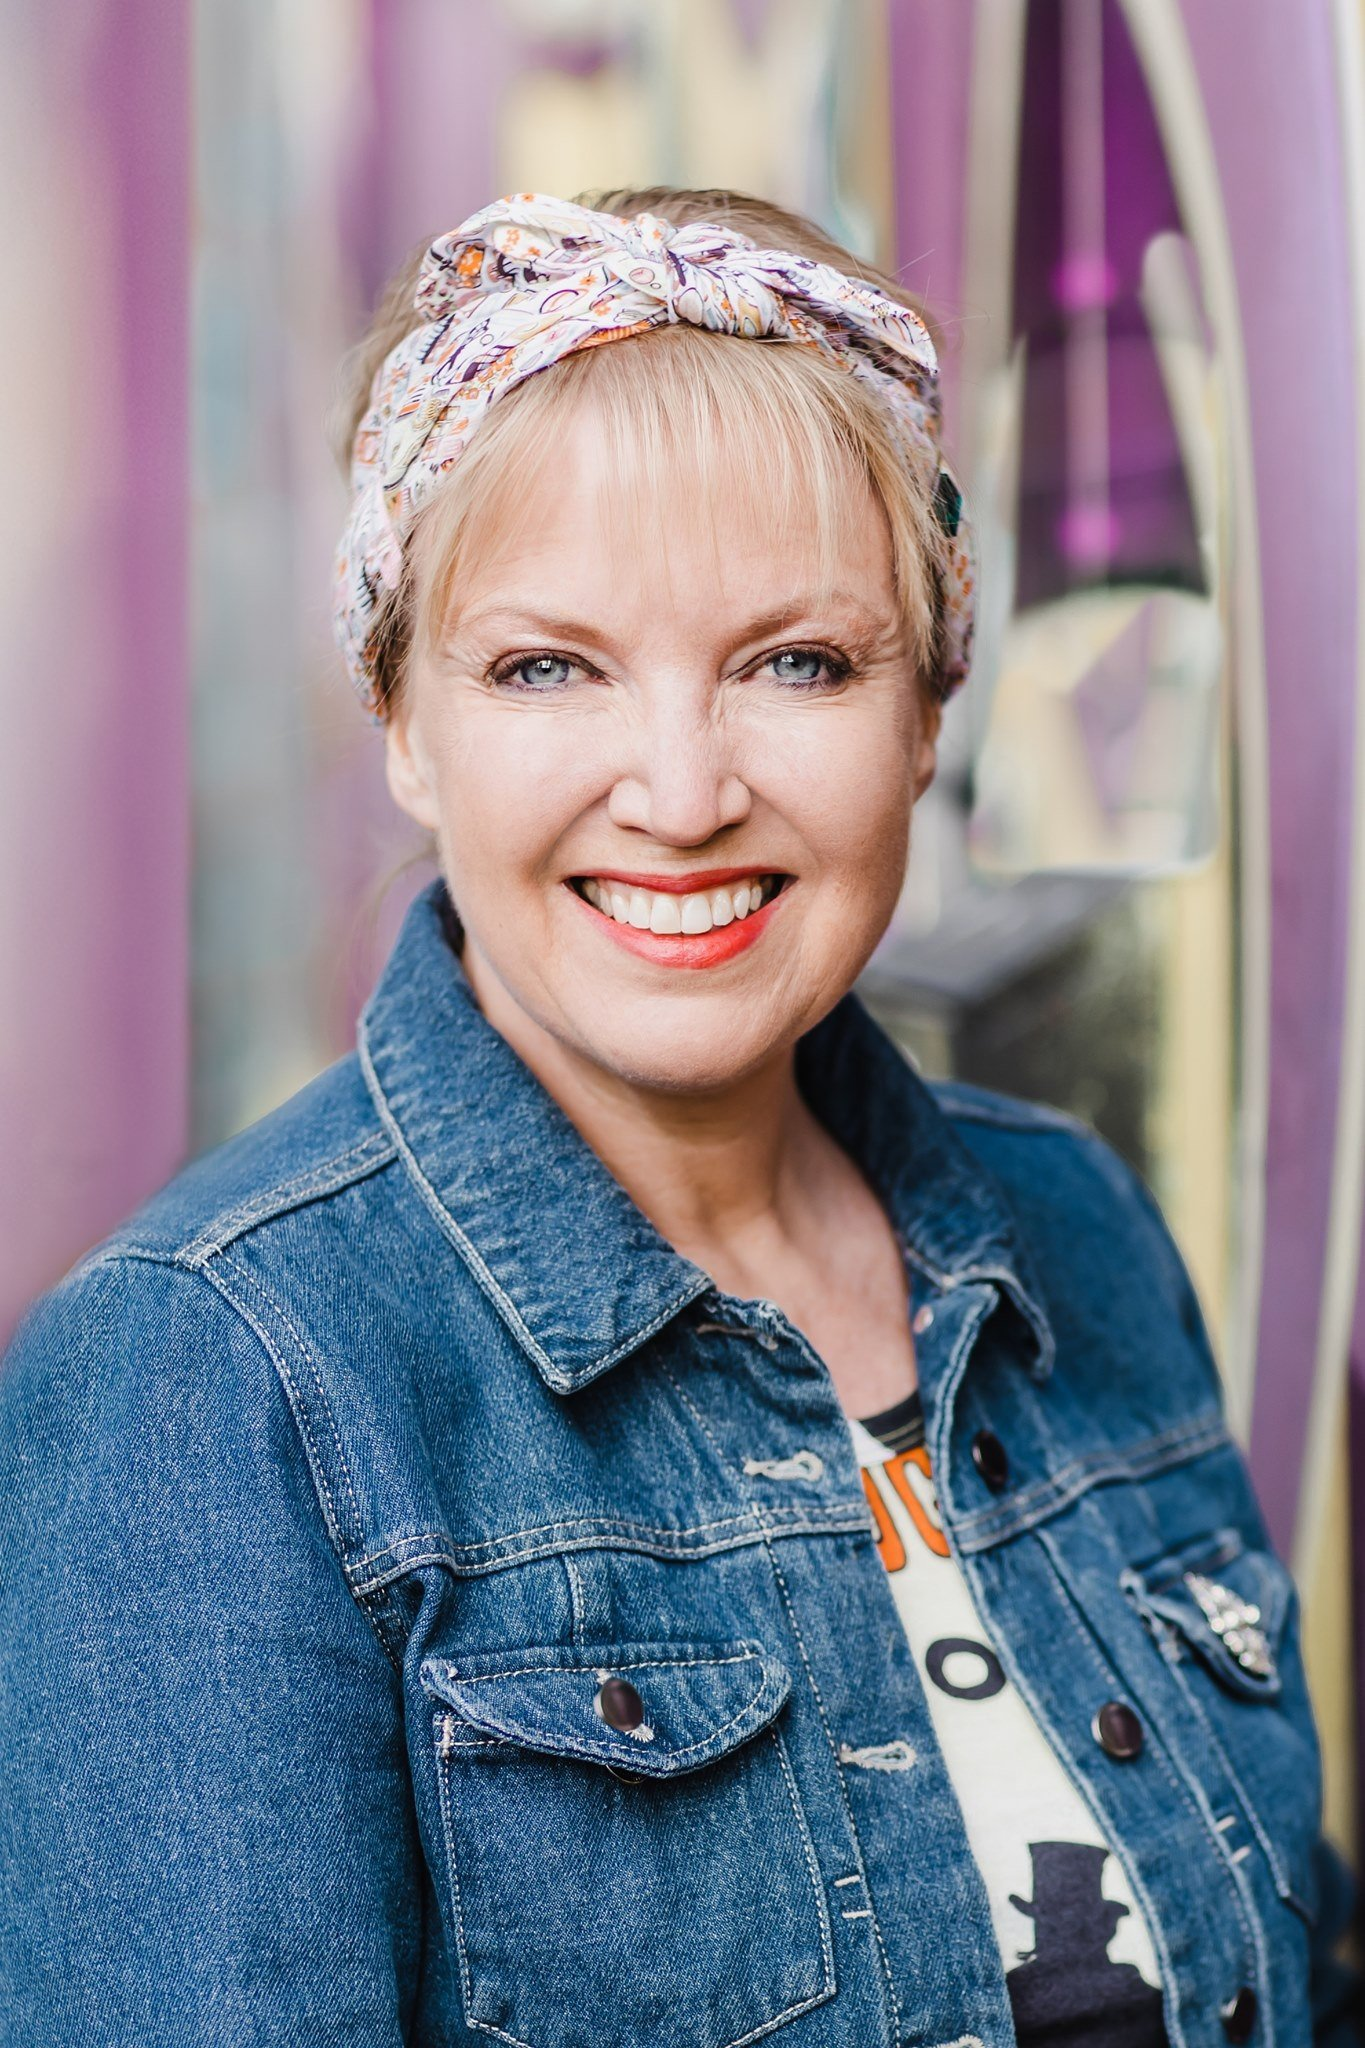 Annie Armitage photographer wearing a denim jacket and standing in front of pink mural